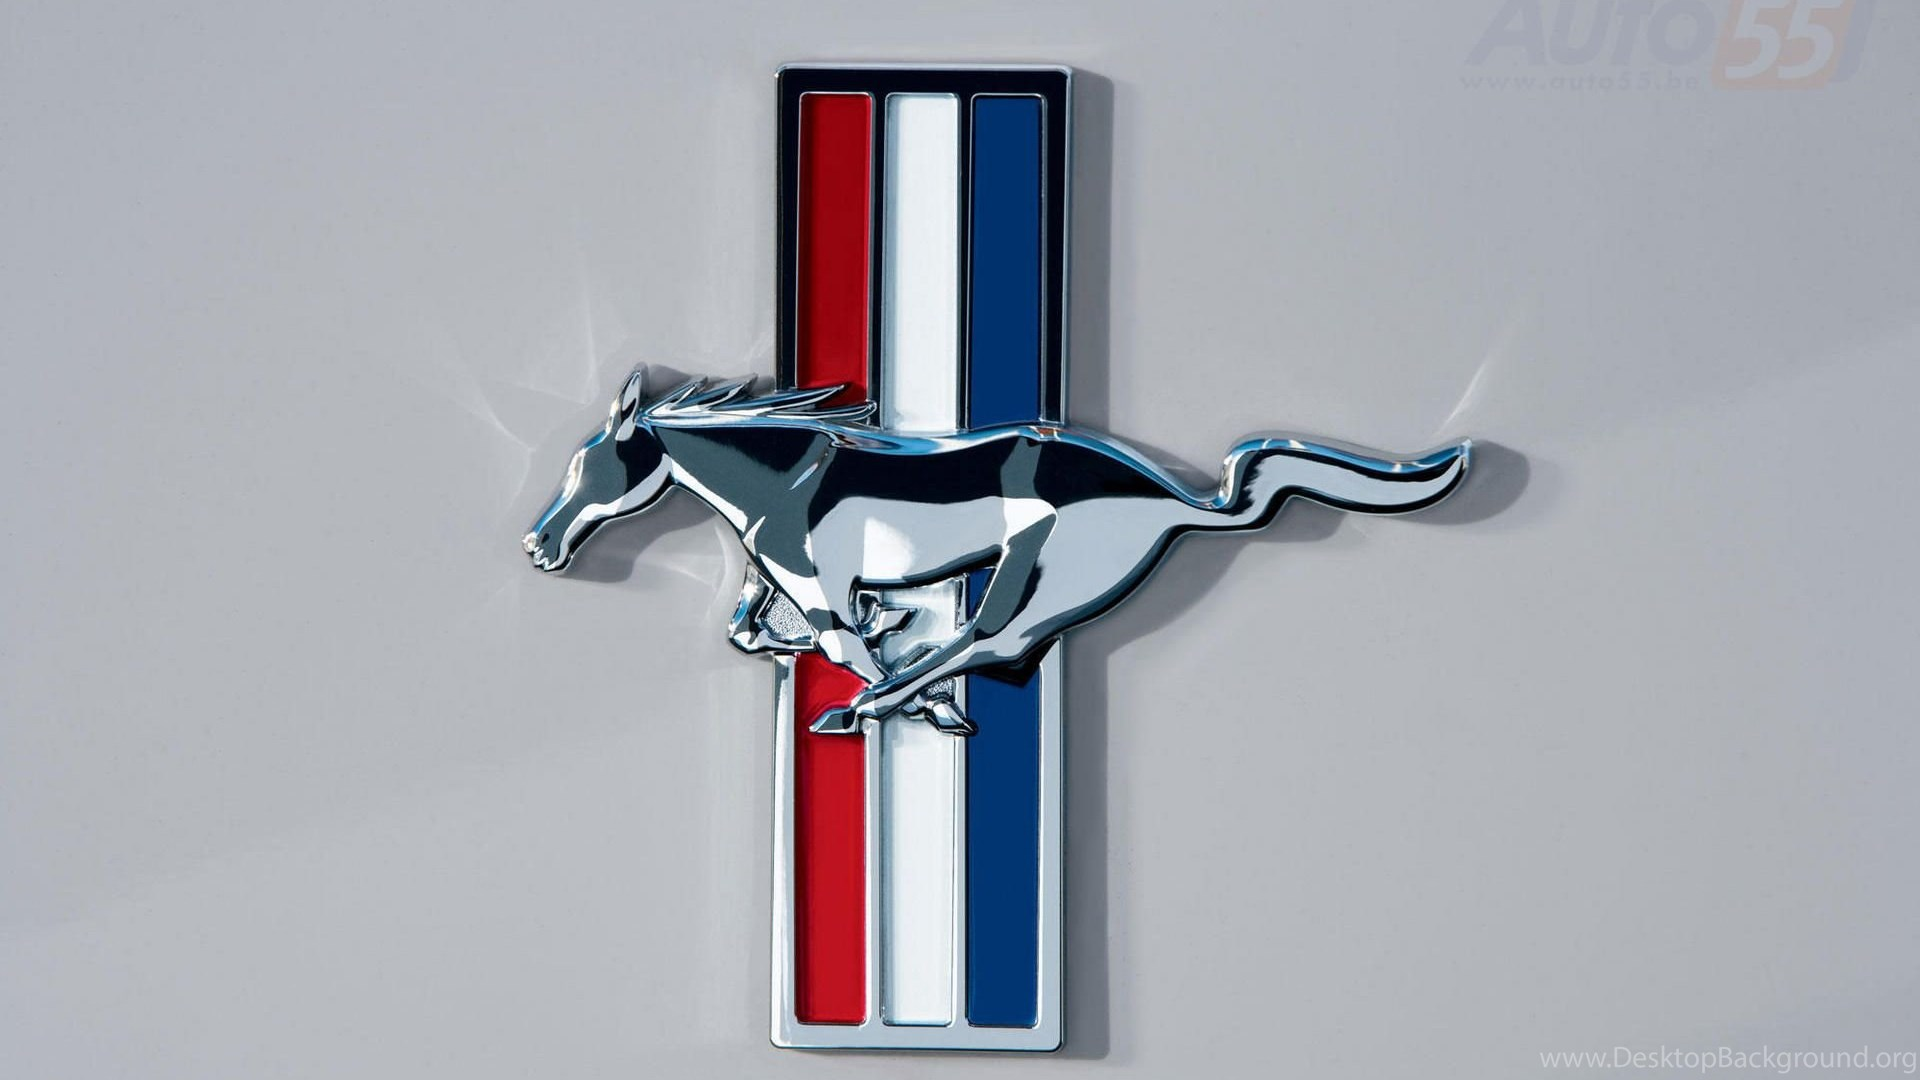 Ford Mustang Logo Wallpapers Cave Desktop Background